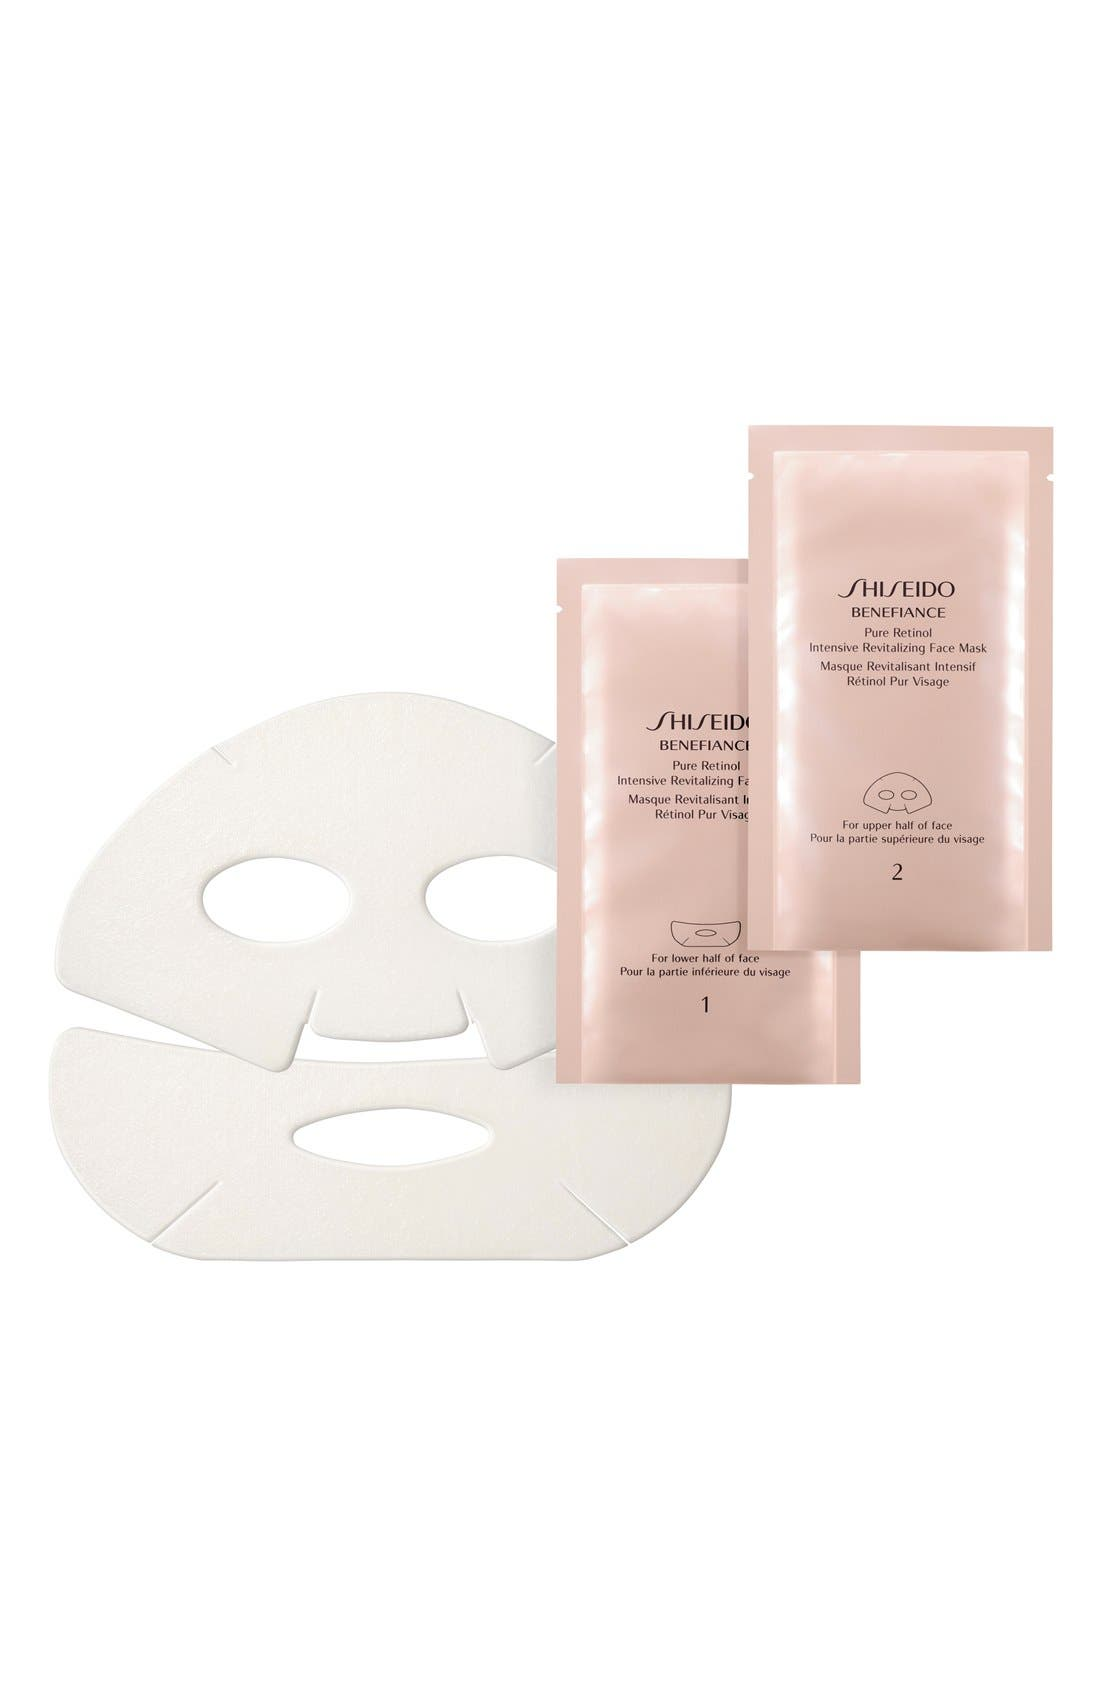 Shiseido 'Benefiance' Pure Retinol Intensive Revitalizing Face Mask